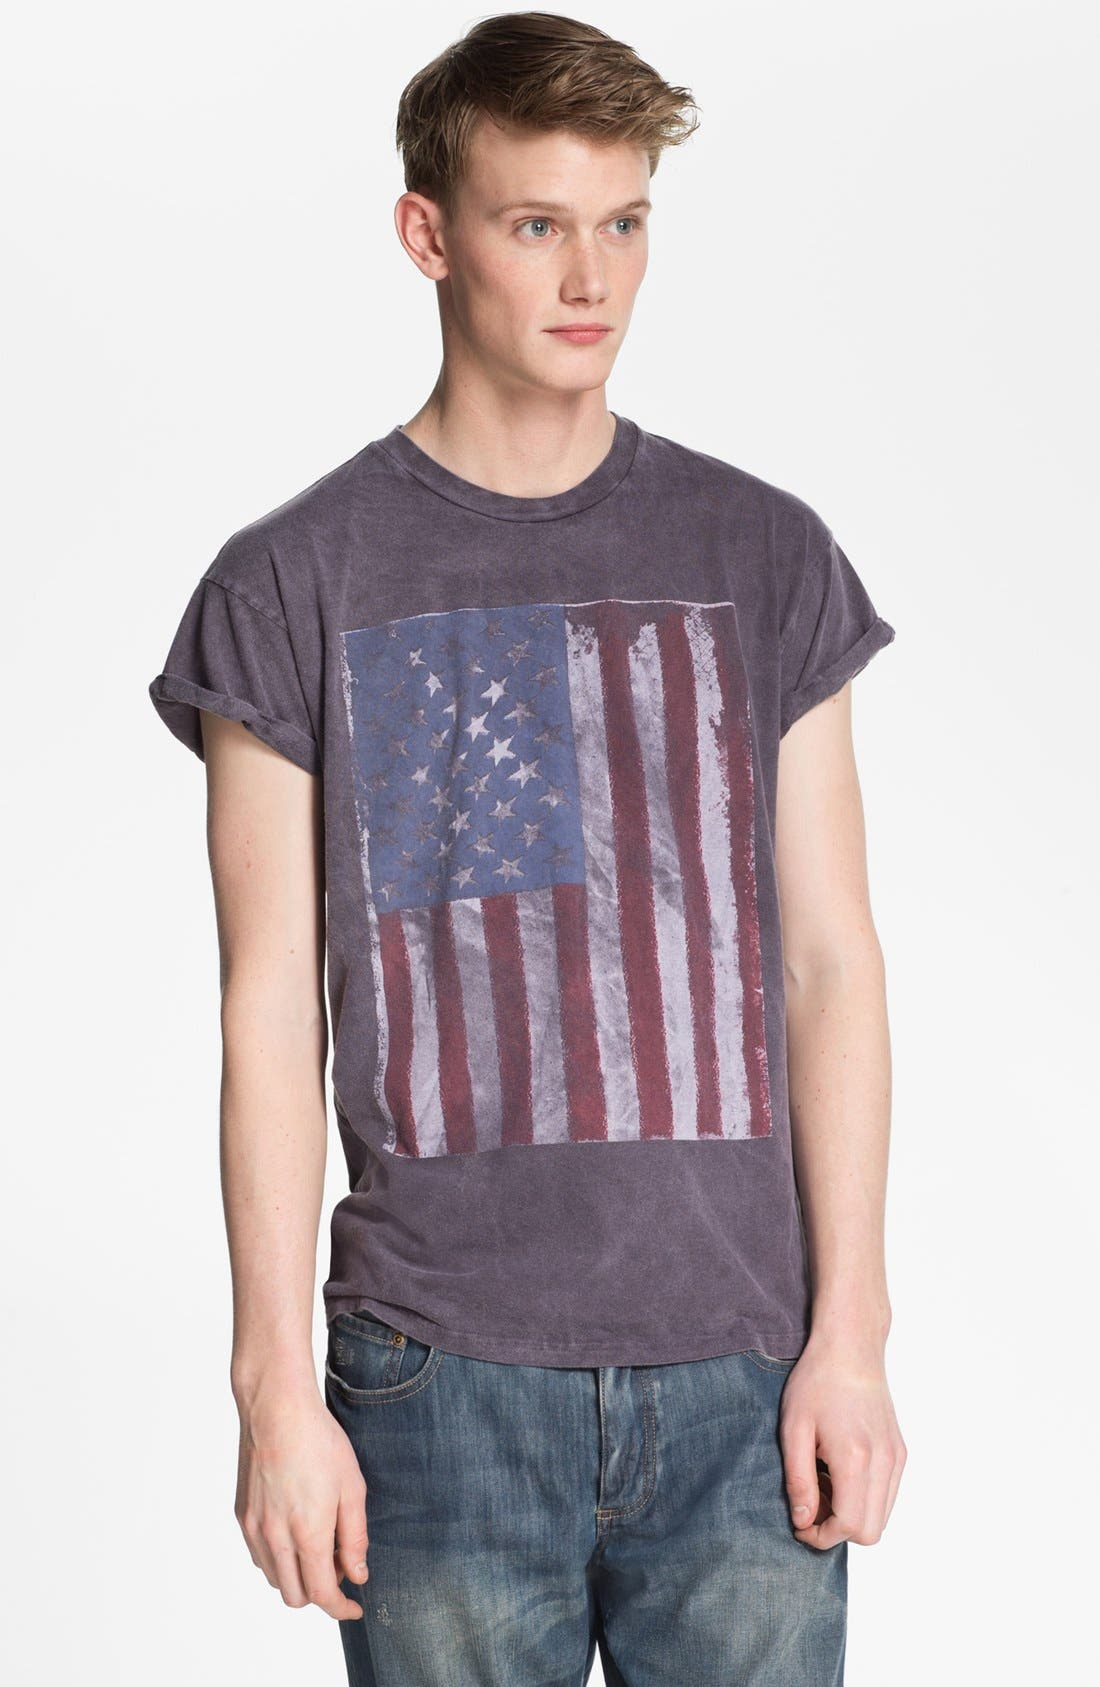 Alternate Image 1 Selected - Topman 'Stars and Stripes' T-Shirt